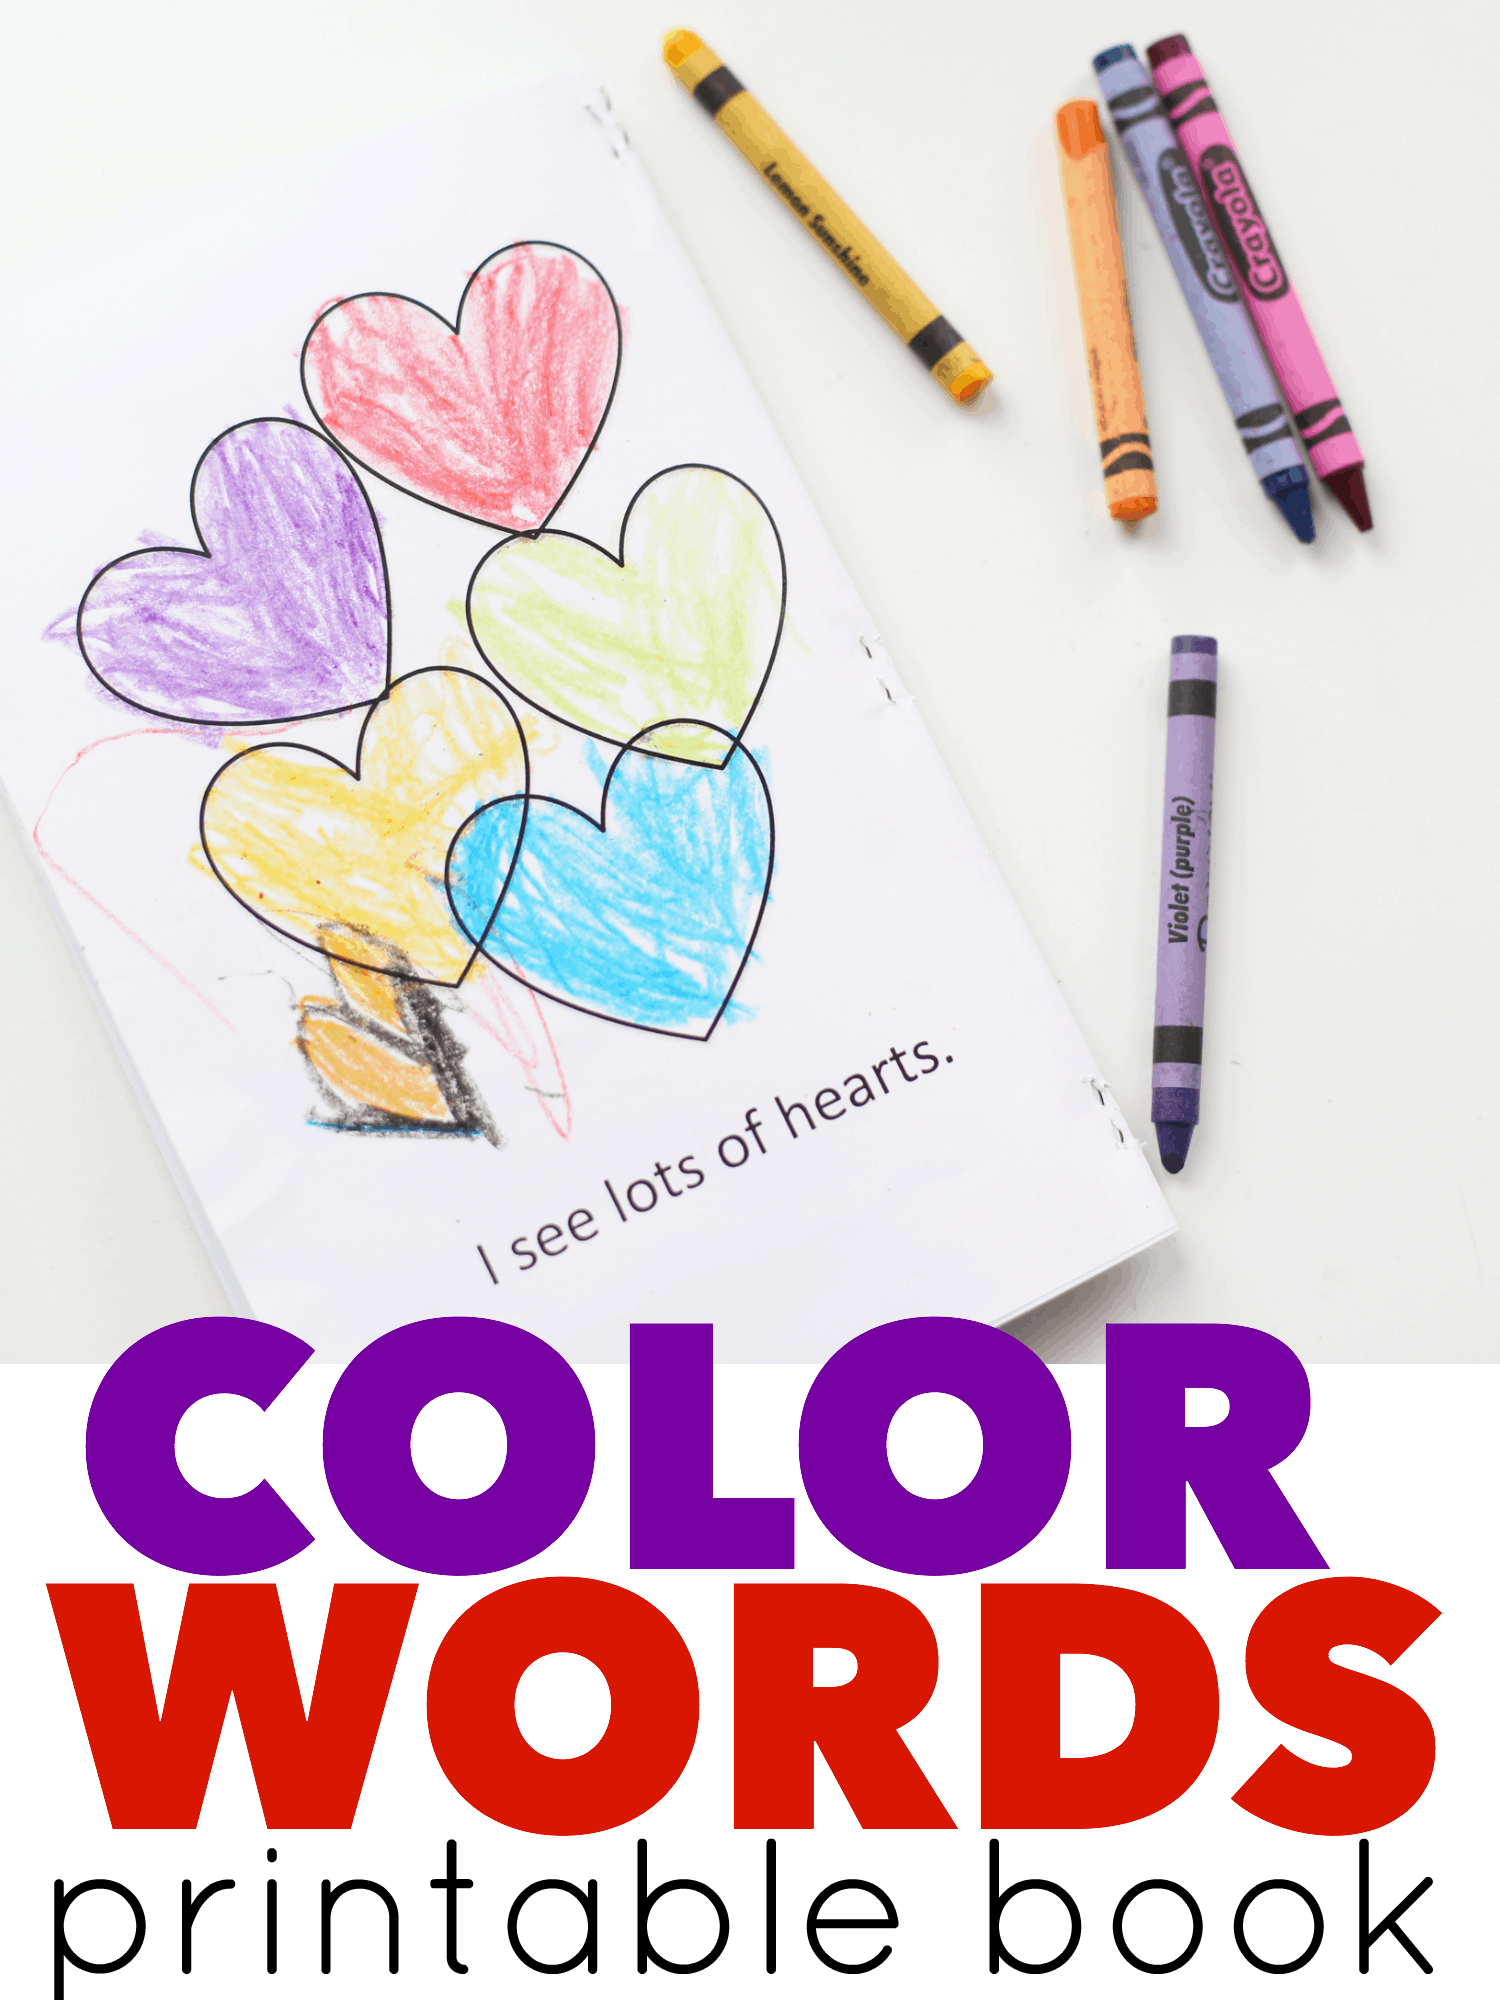 graphic regarding Color Words Printable named Colour Text Printable Ebook for Valentines Working day - I Can Educate